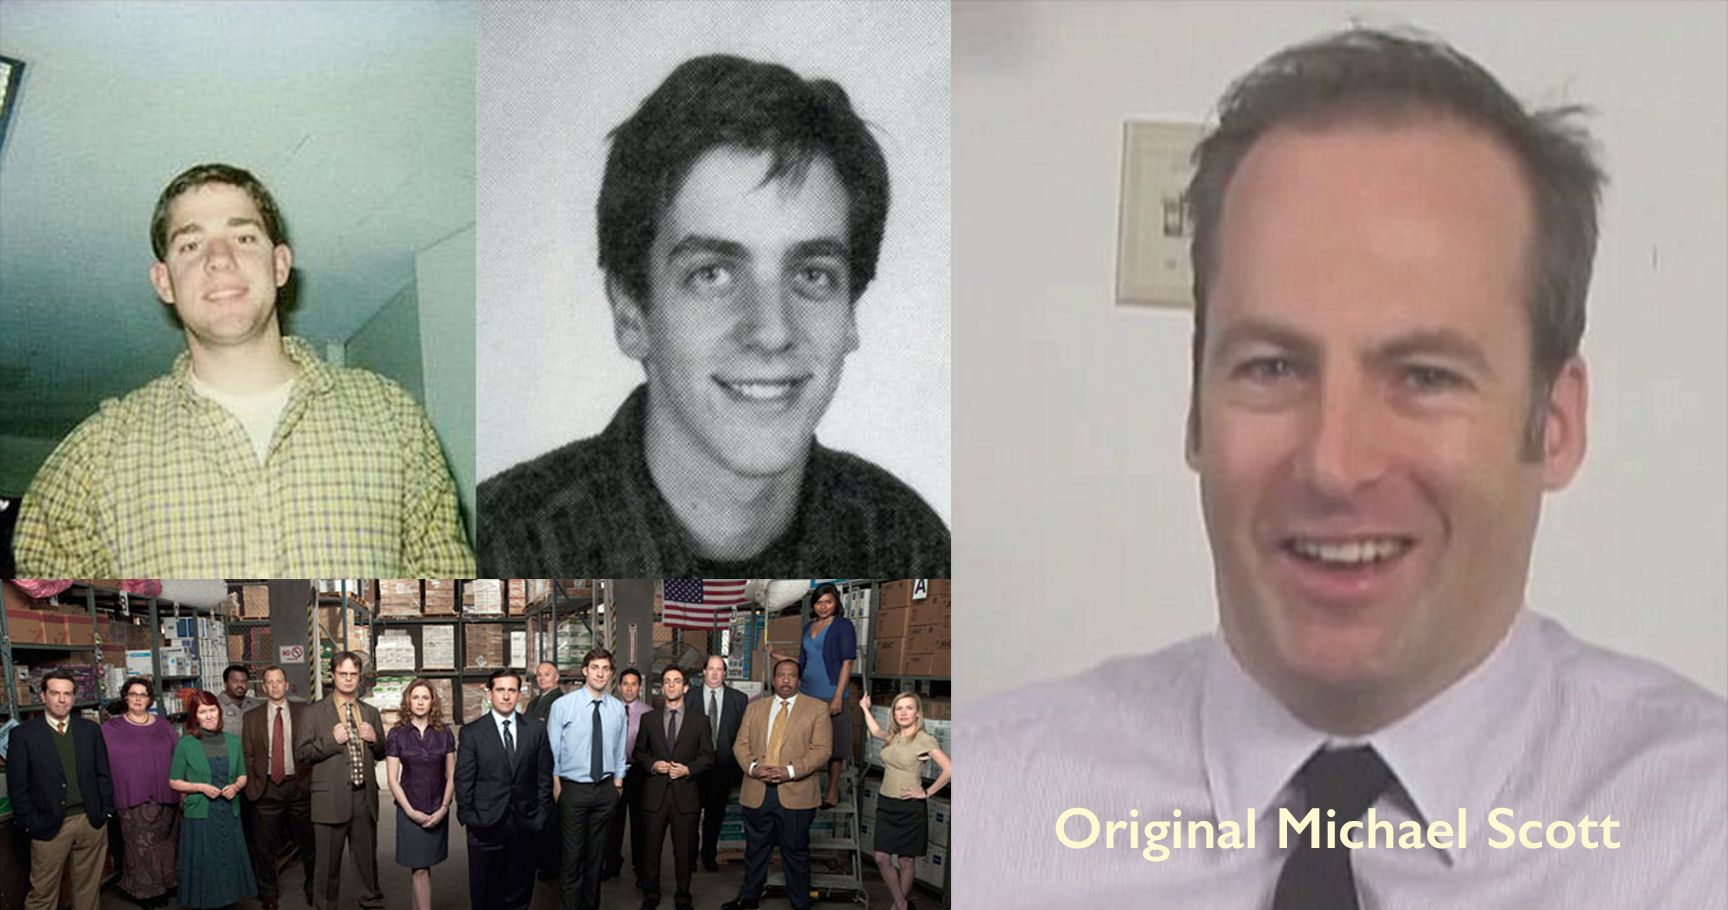 15 Amazing Things You Never Knew About 'The Office'